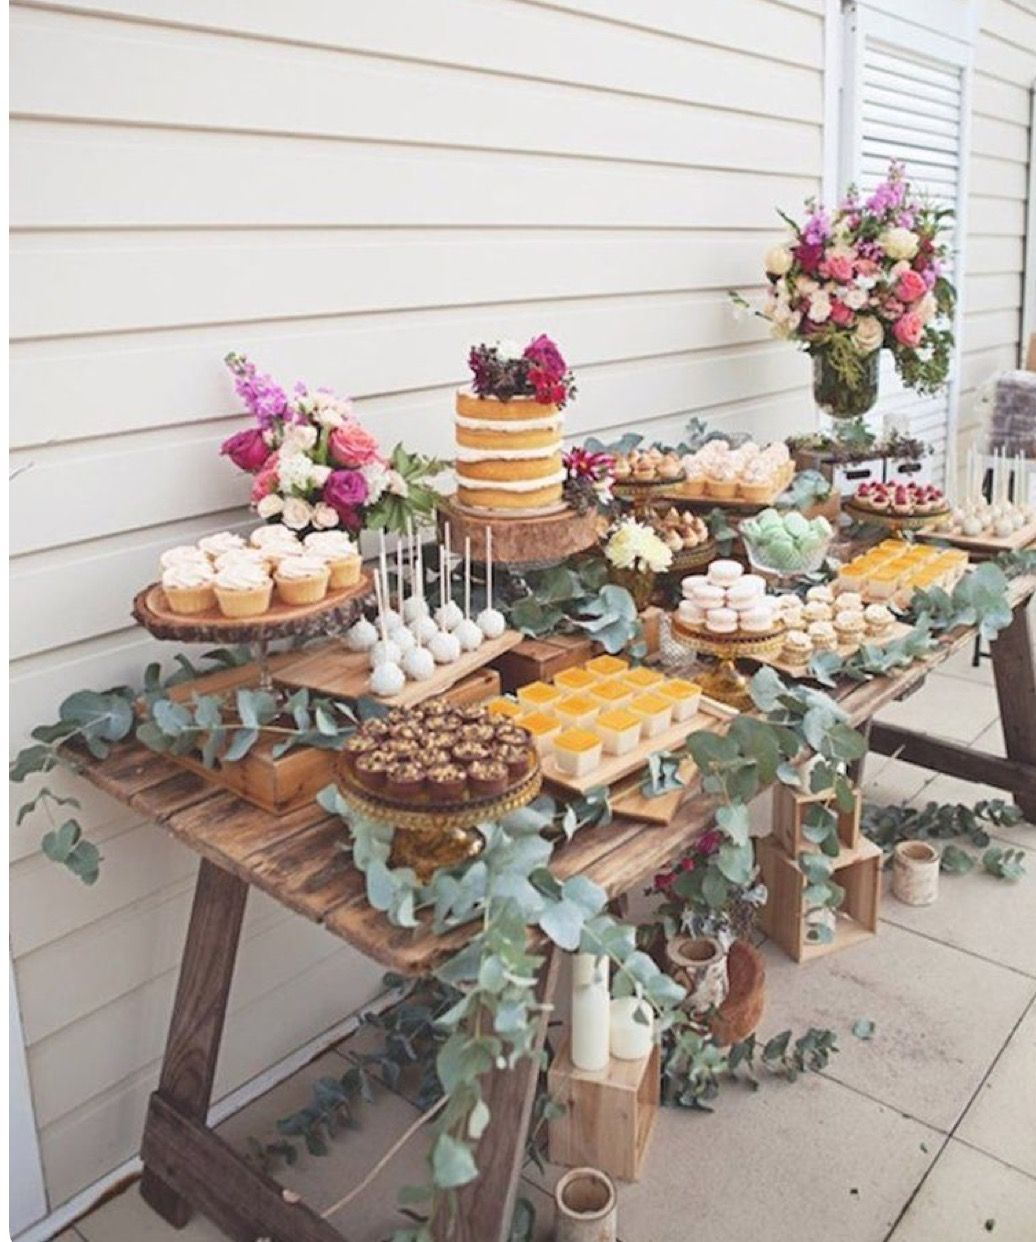 Wedding cake table decor ideas  Cake and sweets station  Candy bars  Pinterest  Cake Bridal